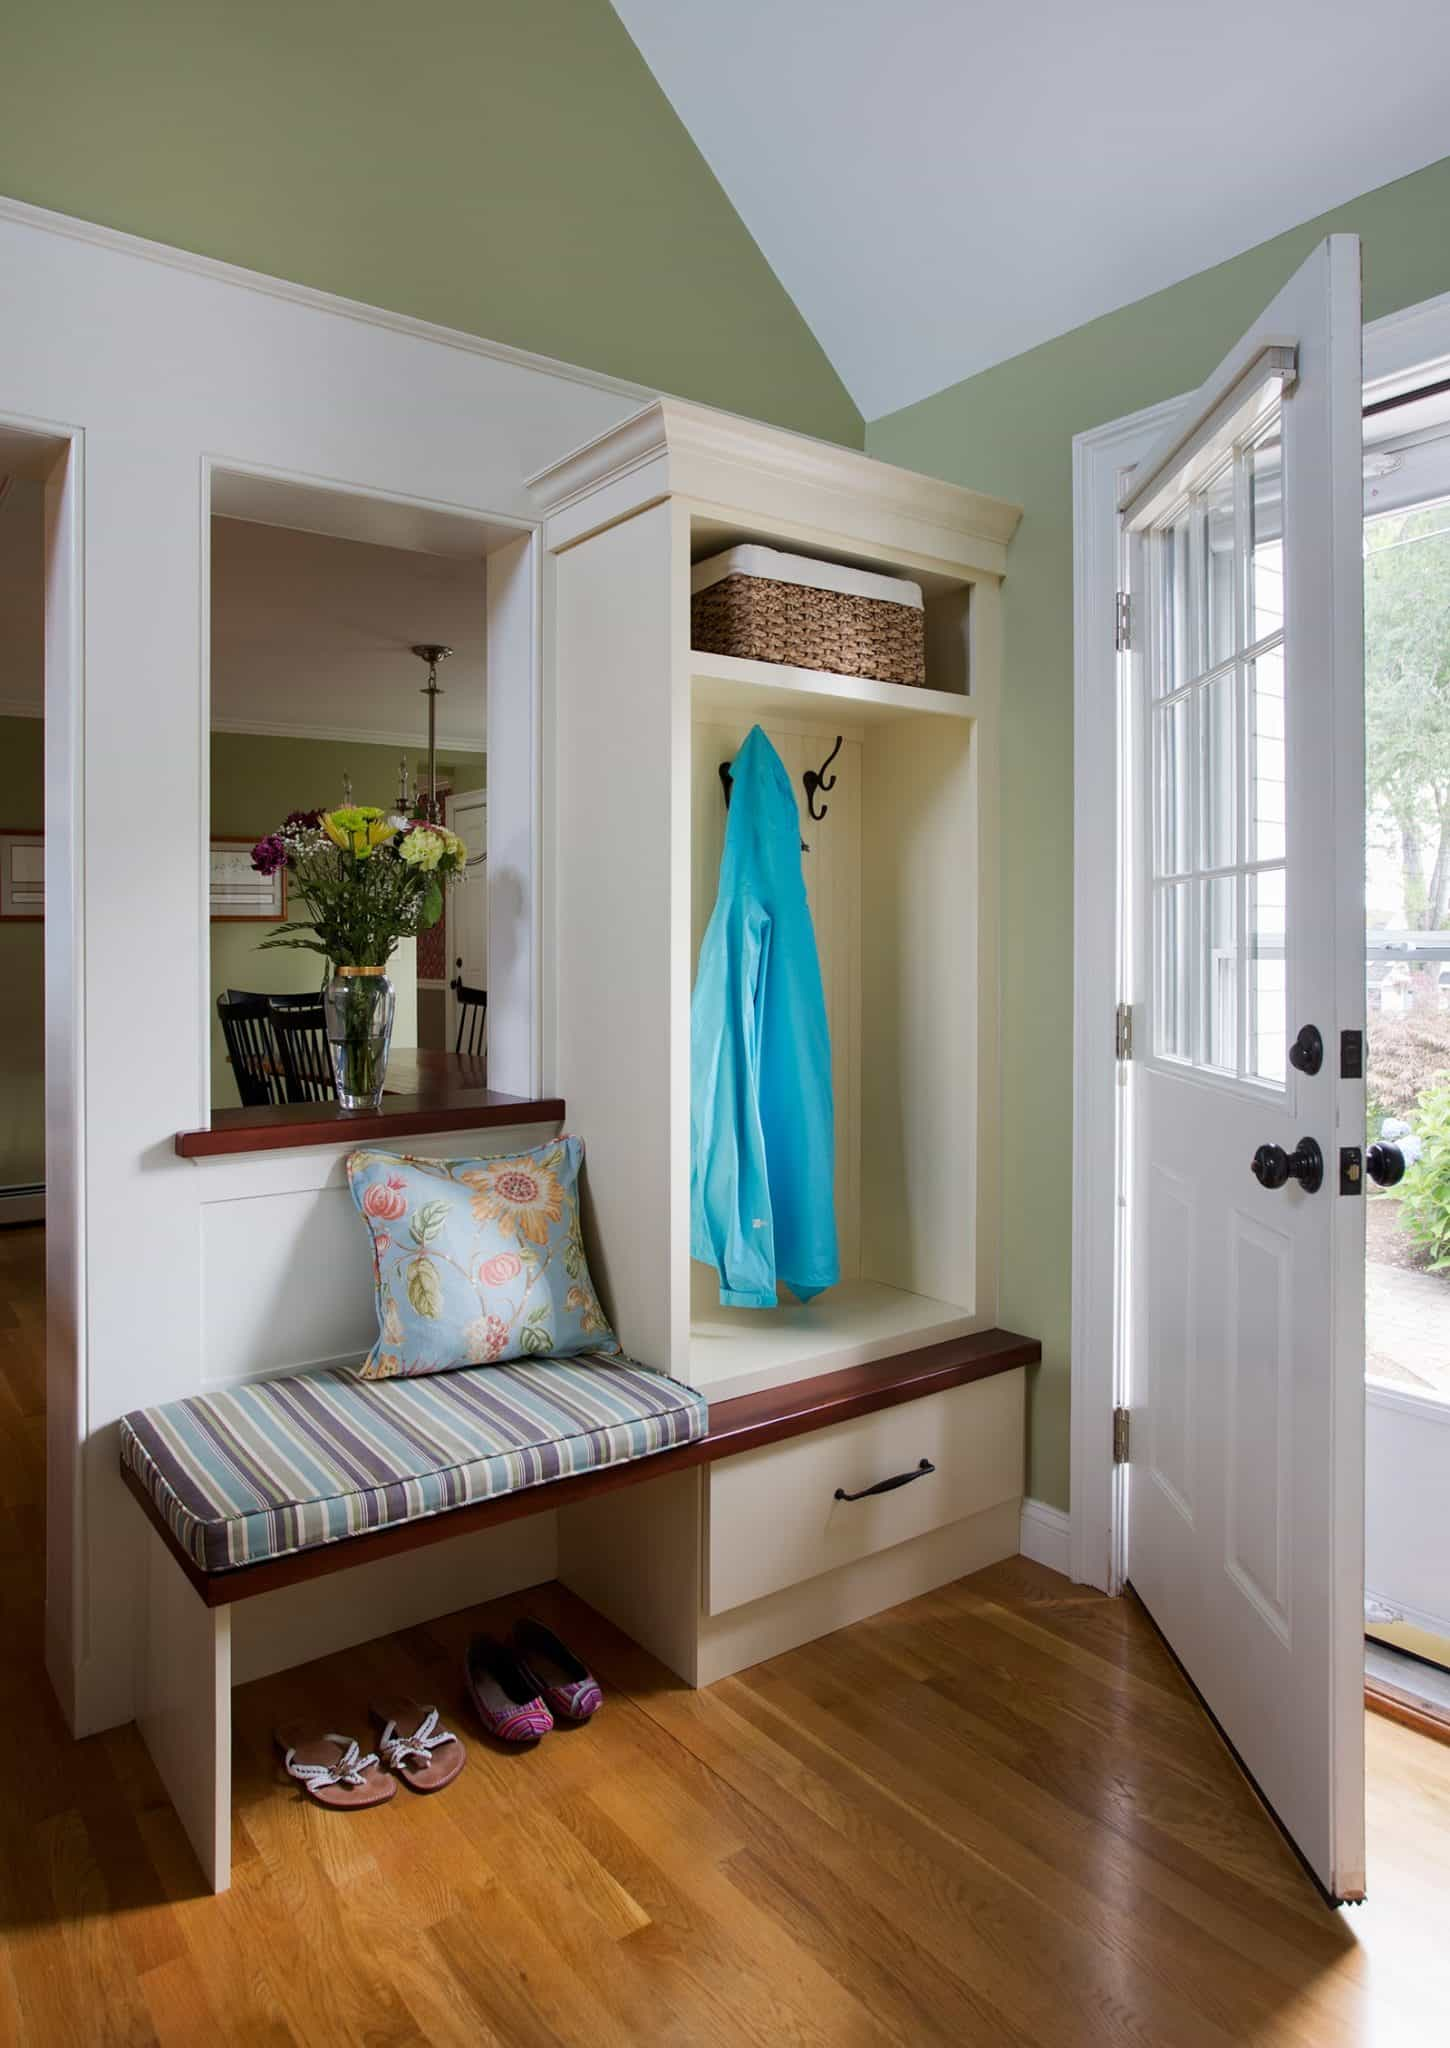 Cape Style Home Interiors Ipswich MA Mudroom Entryway